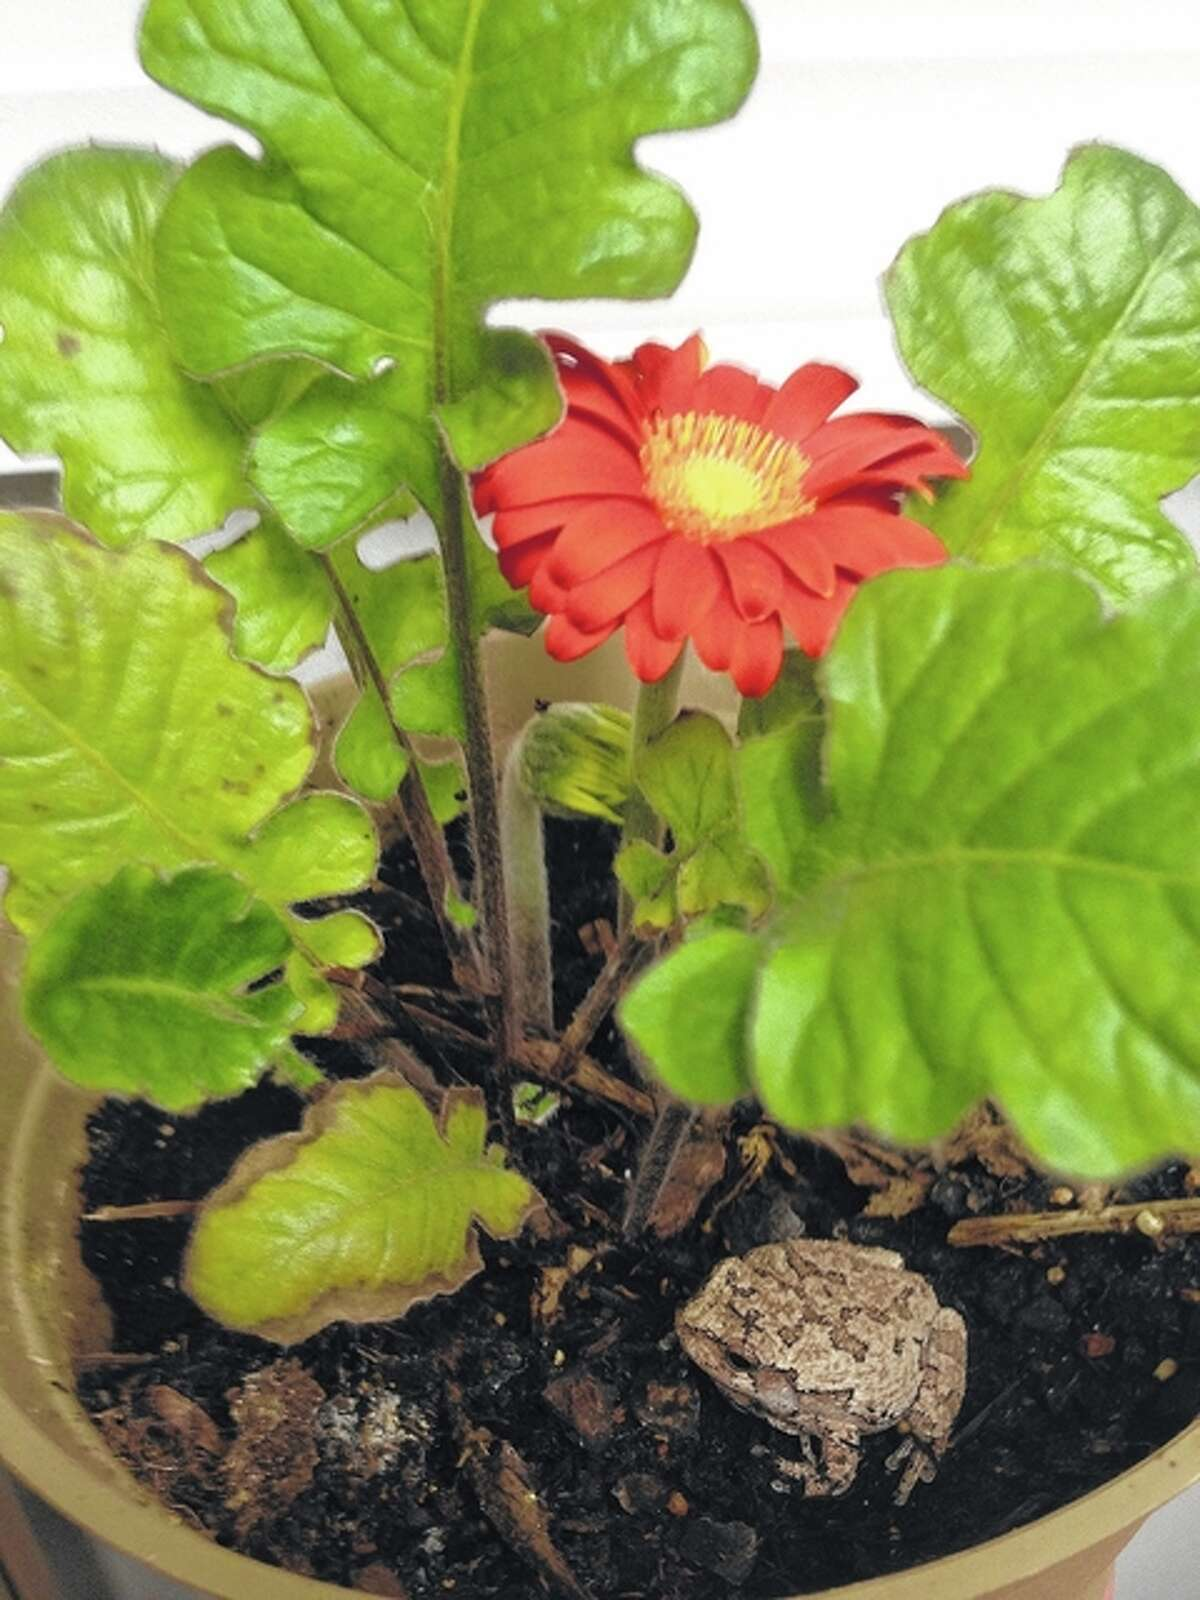 A small toad sits in a gerbera daisy pot.